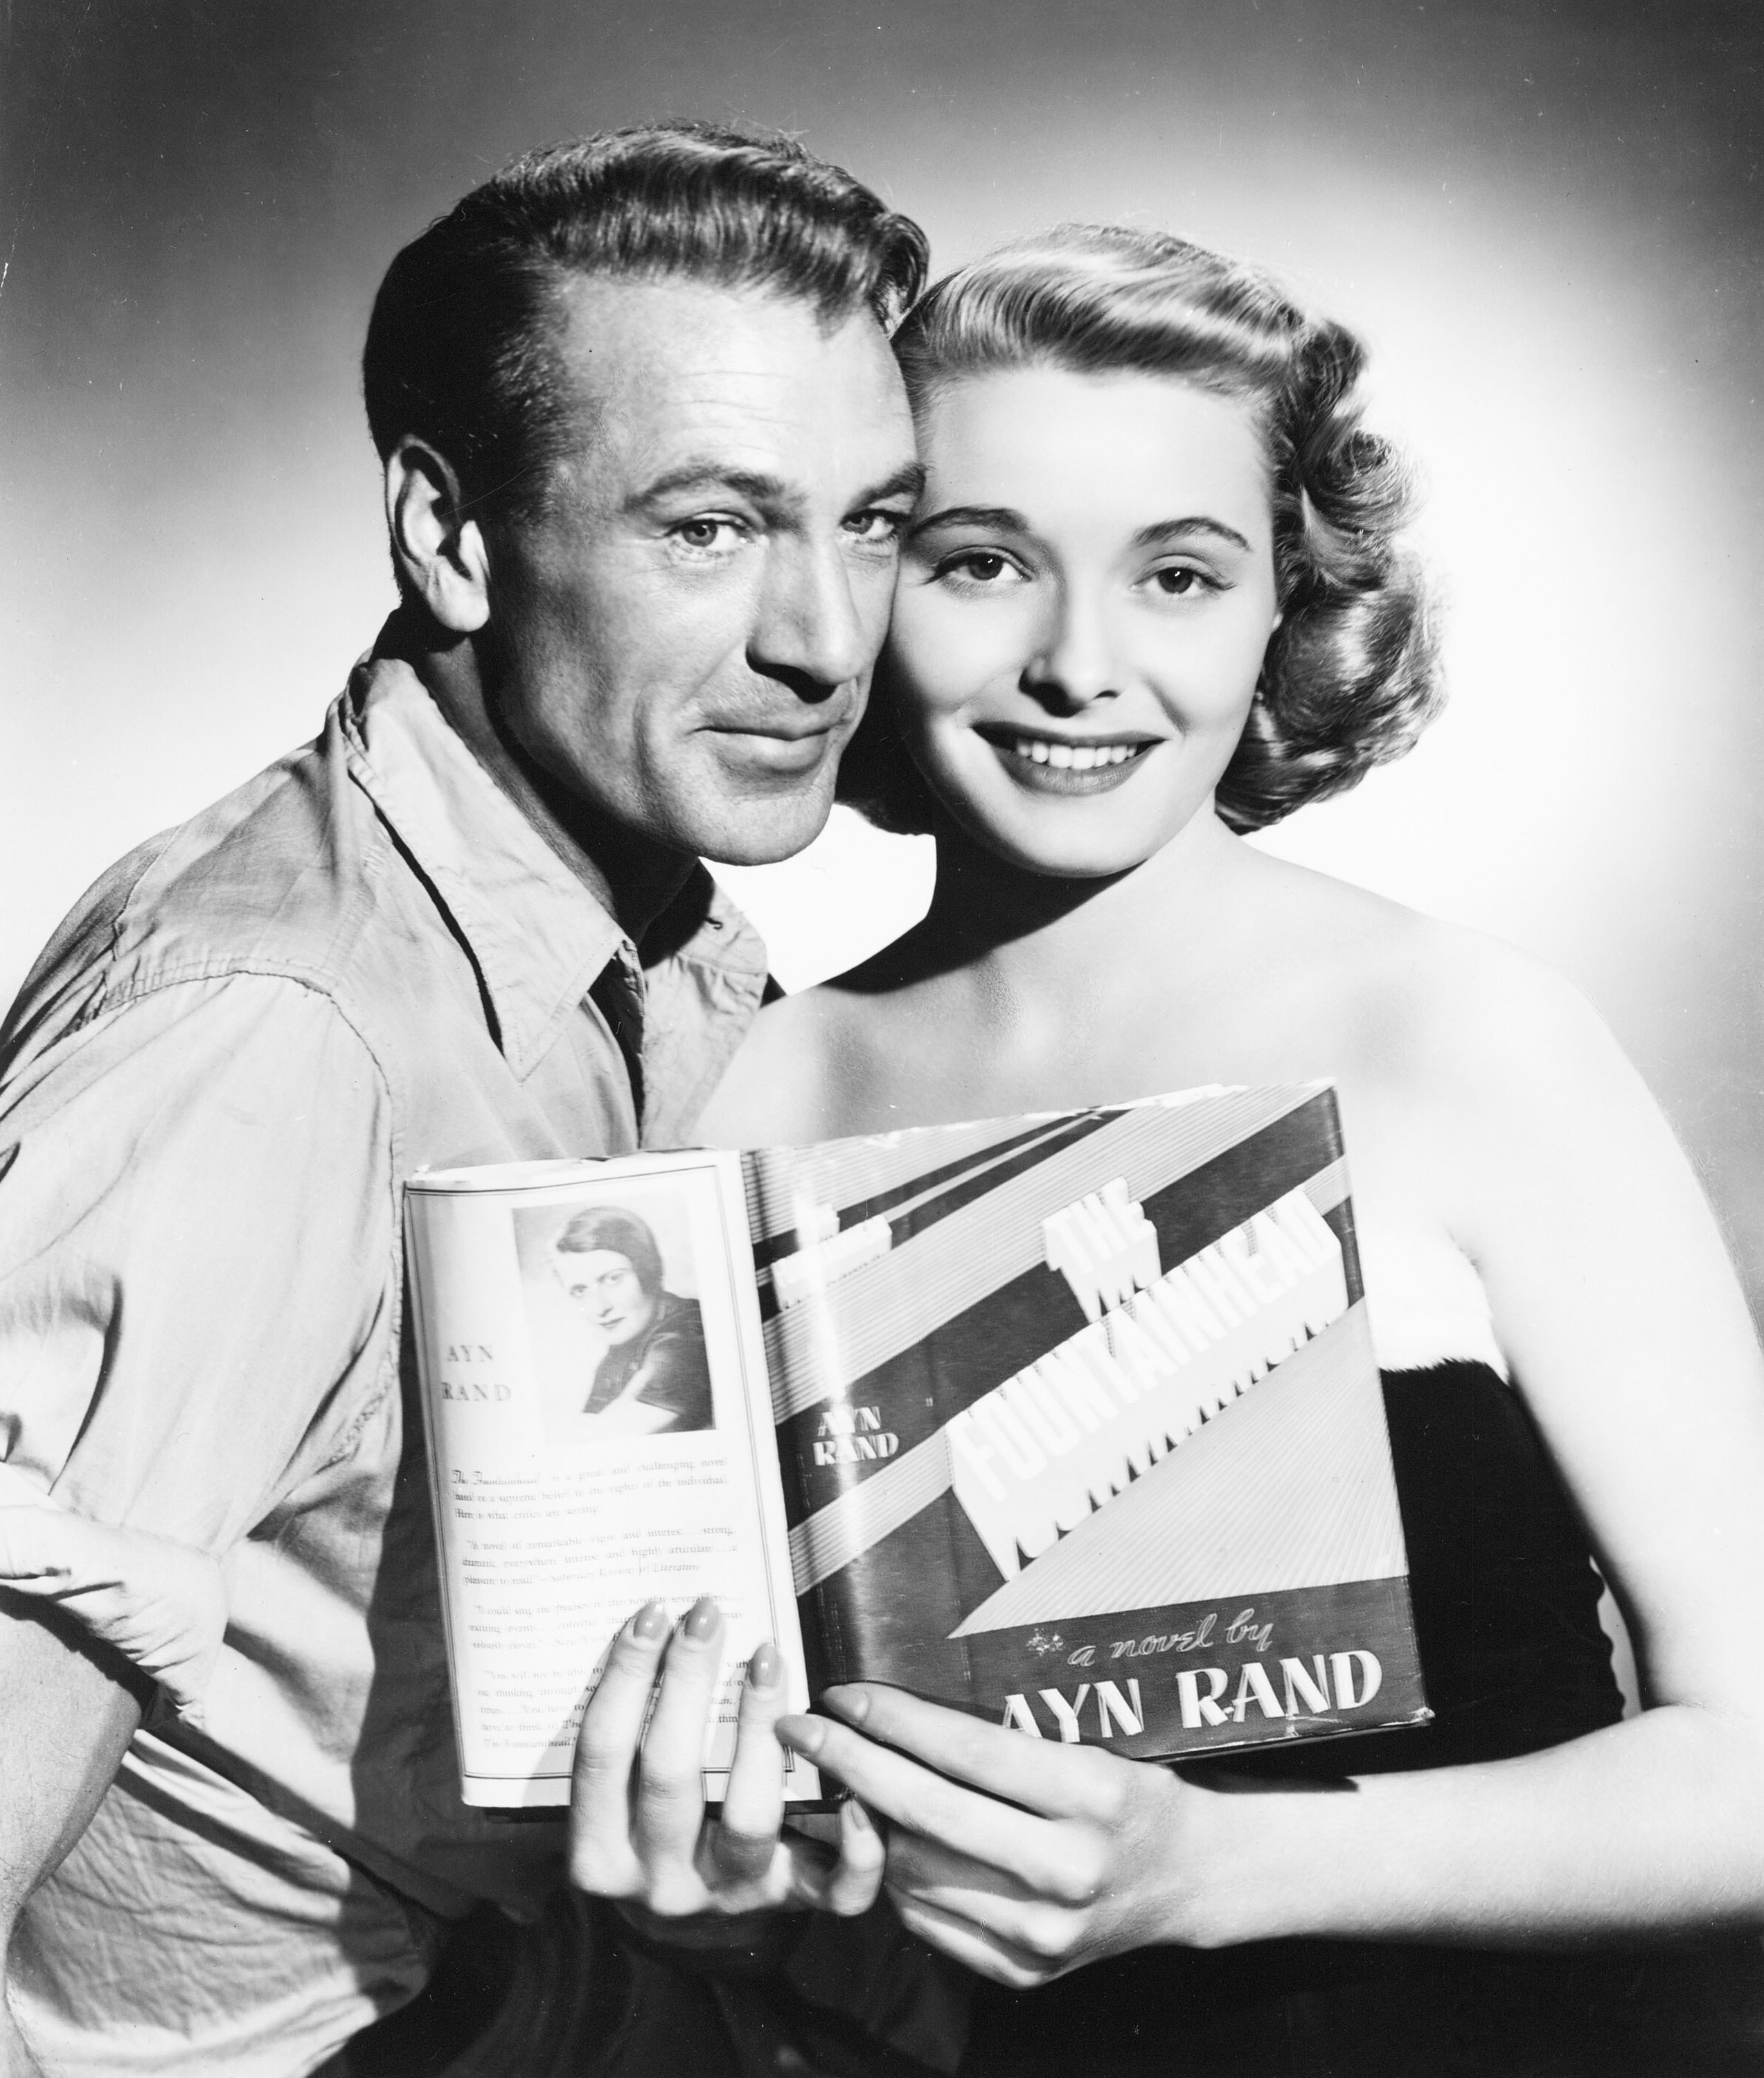 The Fountainhead (1949) Directed by King Vidor Shown: Gary Cooper, Patricia Neal  Featuring: The Fountainhead (1949) When: 01 Jan 1949 Credit: WENN.com  **WENN does not claim any ownership including but not limited to Copyright or License in the attached material. Fees charged by WENN are for WENN's services only, and do not, nor are they intended to, convey to the user any ownership of Copyright or License in the material. By publishing this material you expressly agree to indemnify and to hold WENN and its directors, shareholders and employees harmless from any loss, claims, damages, demands, expenses (including legal fees), or any causes of action or allegation against WENN arising out of or connected in any way with publication of the material.**